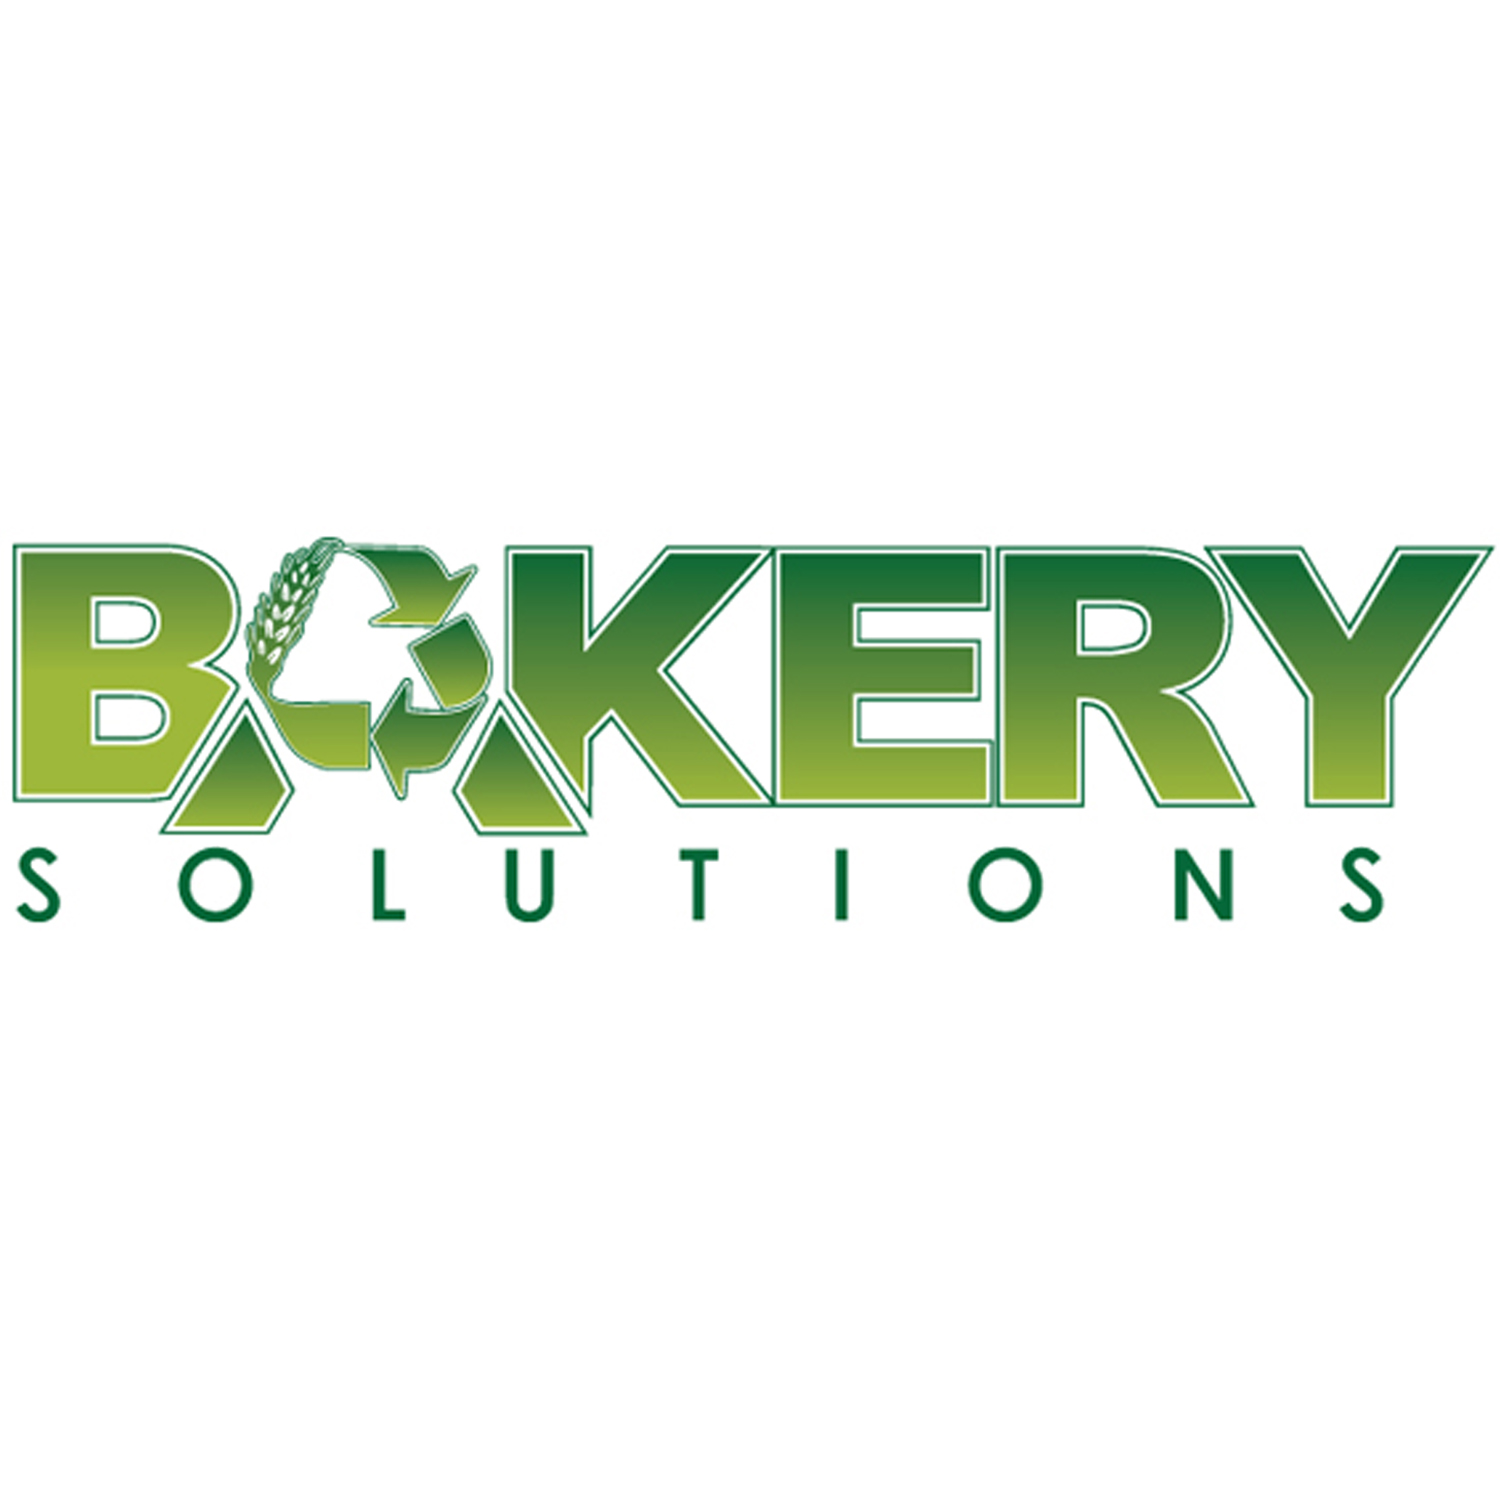 Bakery Solutions - Since 2003, Bakery Solutions has been specializing in the recycling of bakery related food waste.